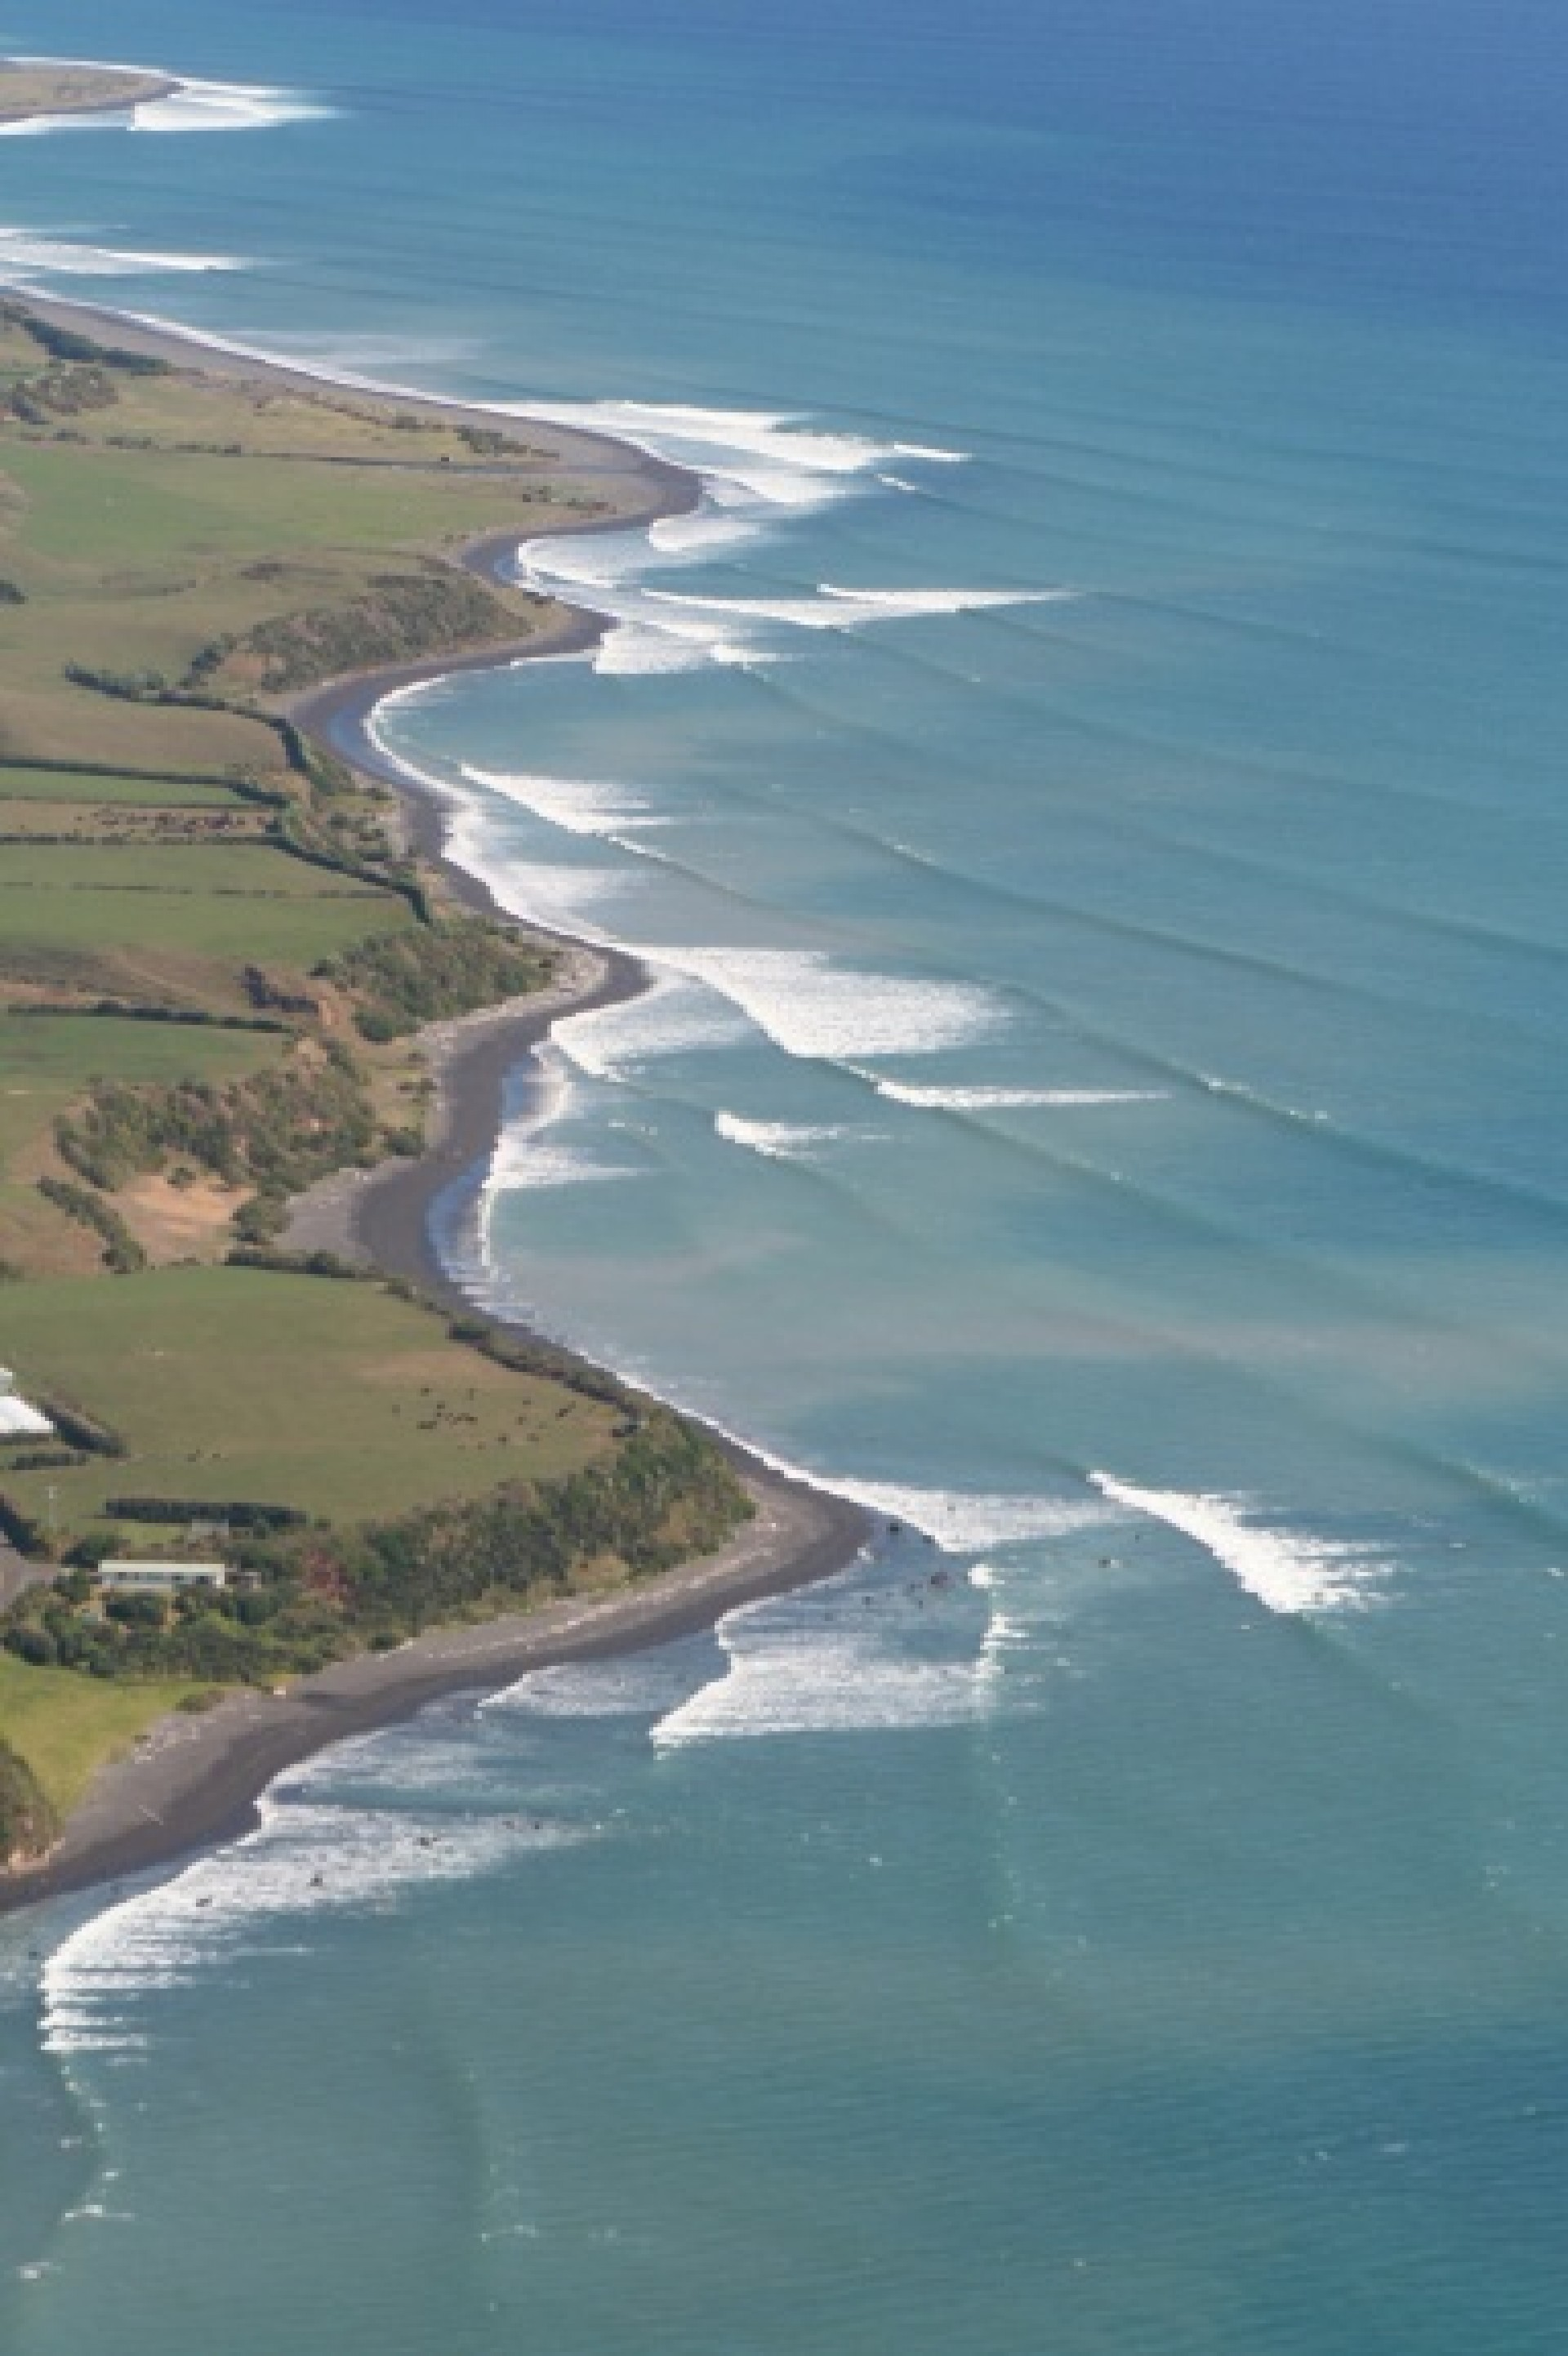 greg s's photo of New Plymouth